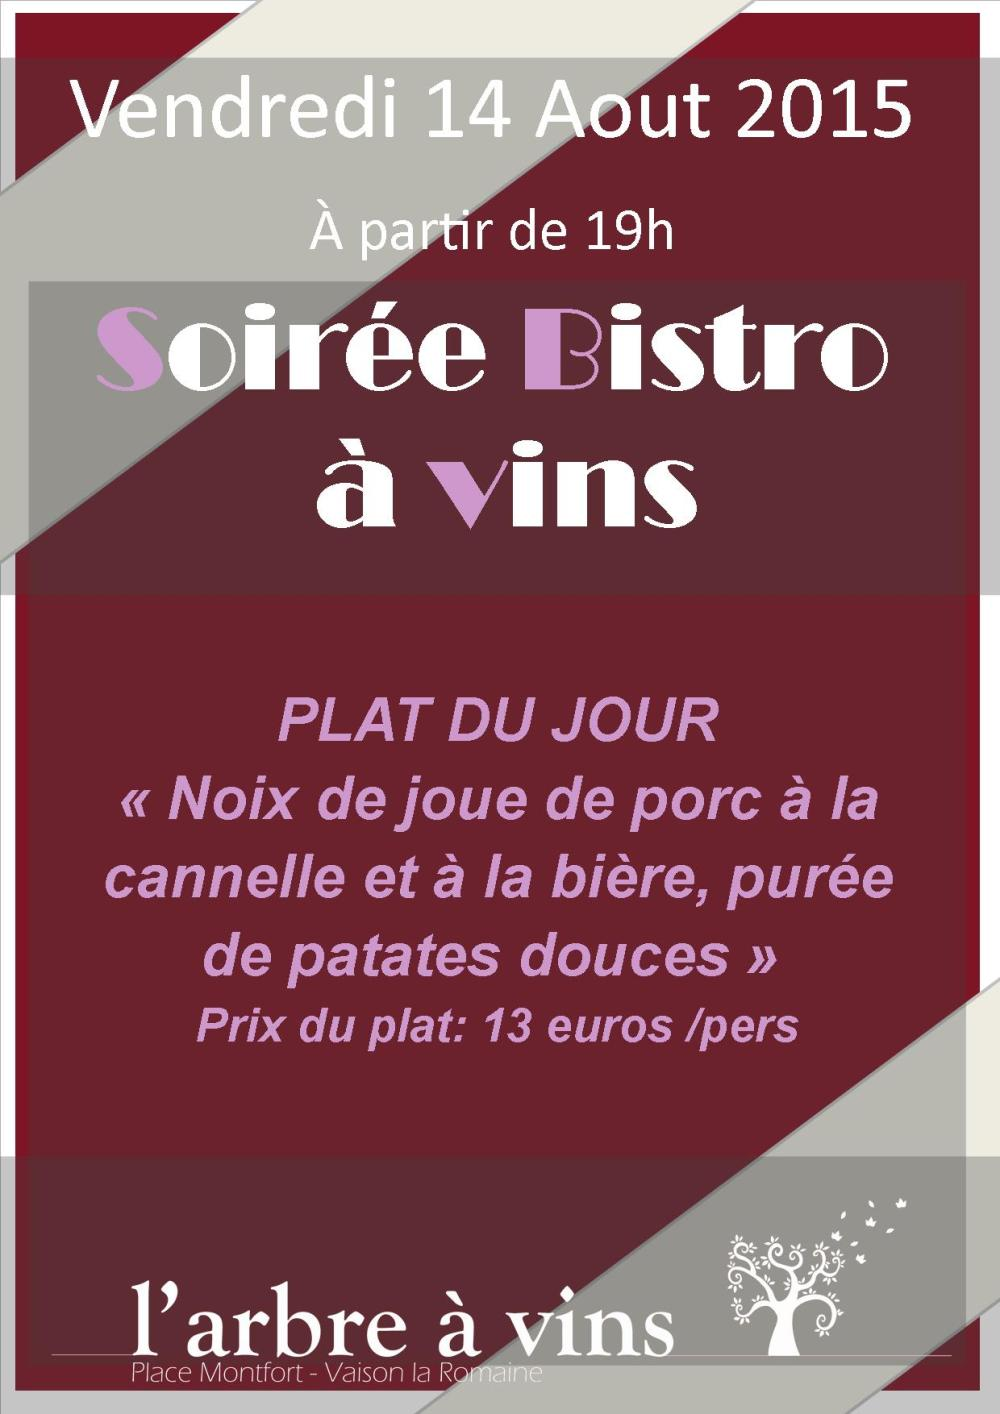 soiree bistro 14 Aout